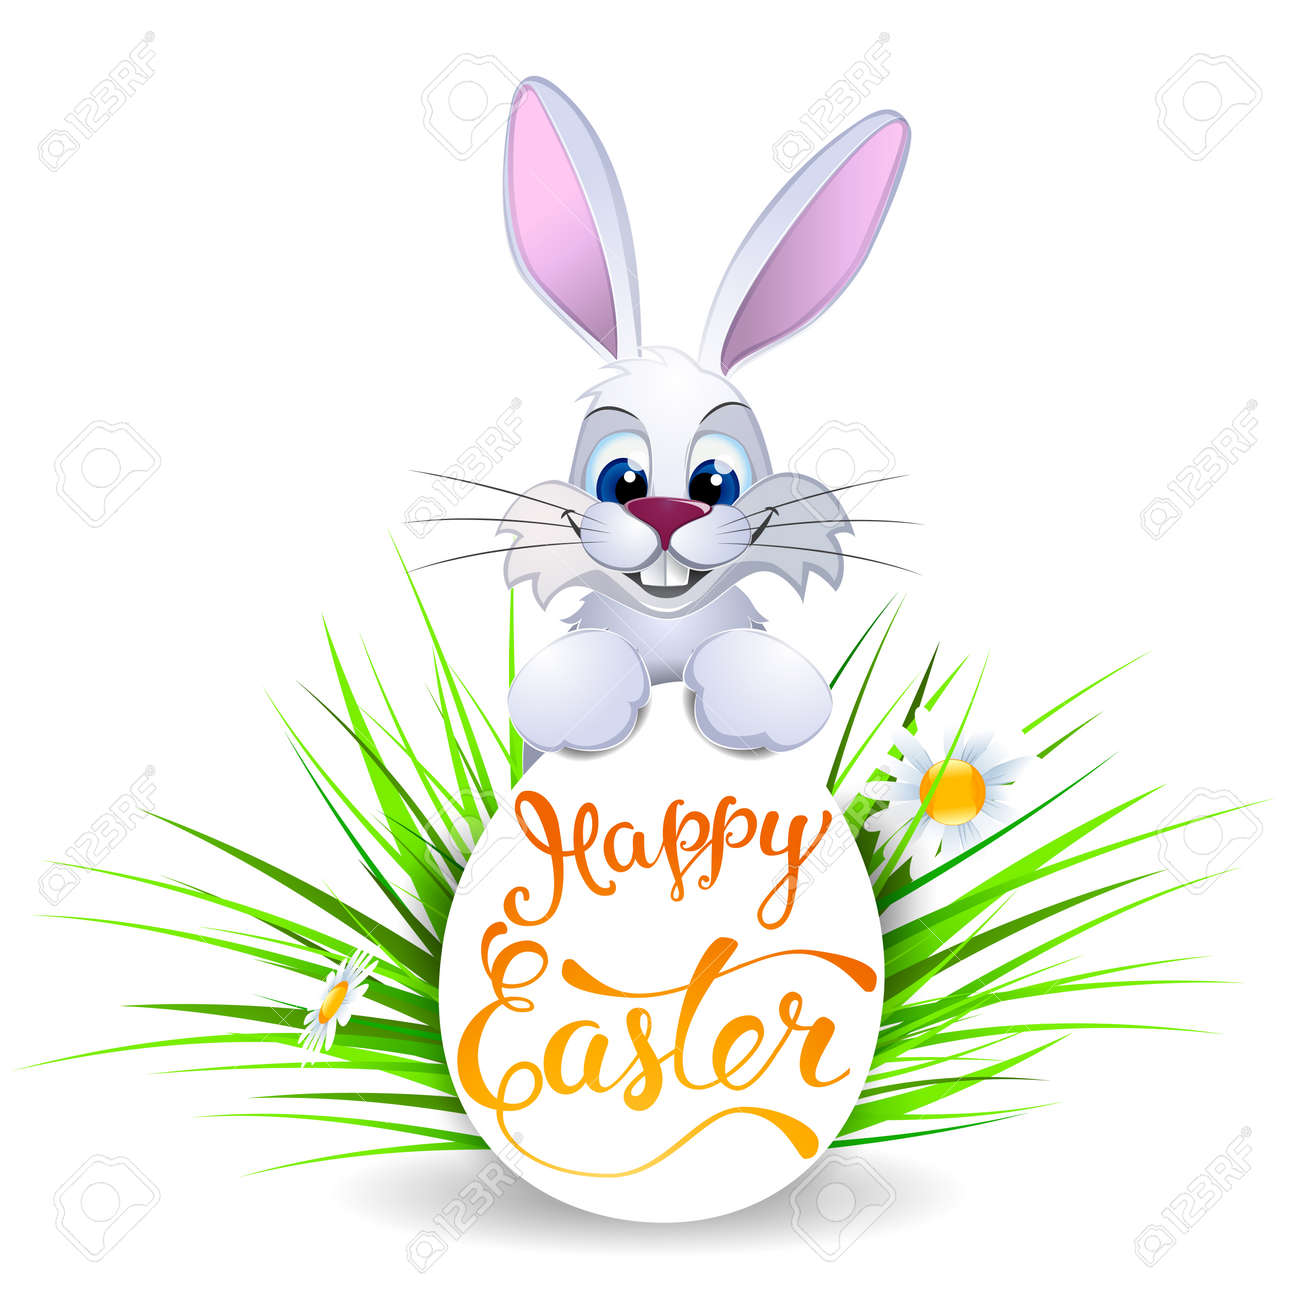 easter greeting card with easter rabbit easter egg and original